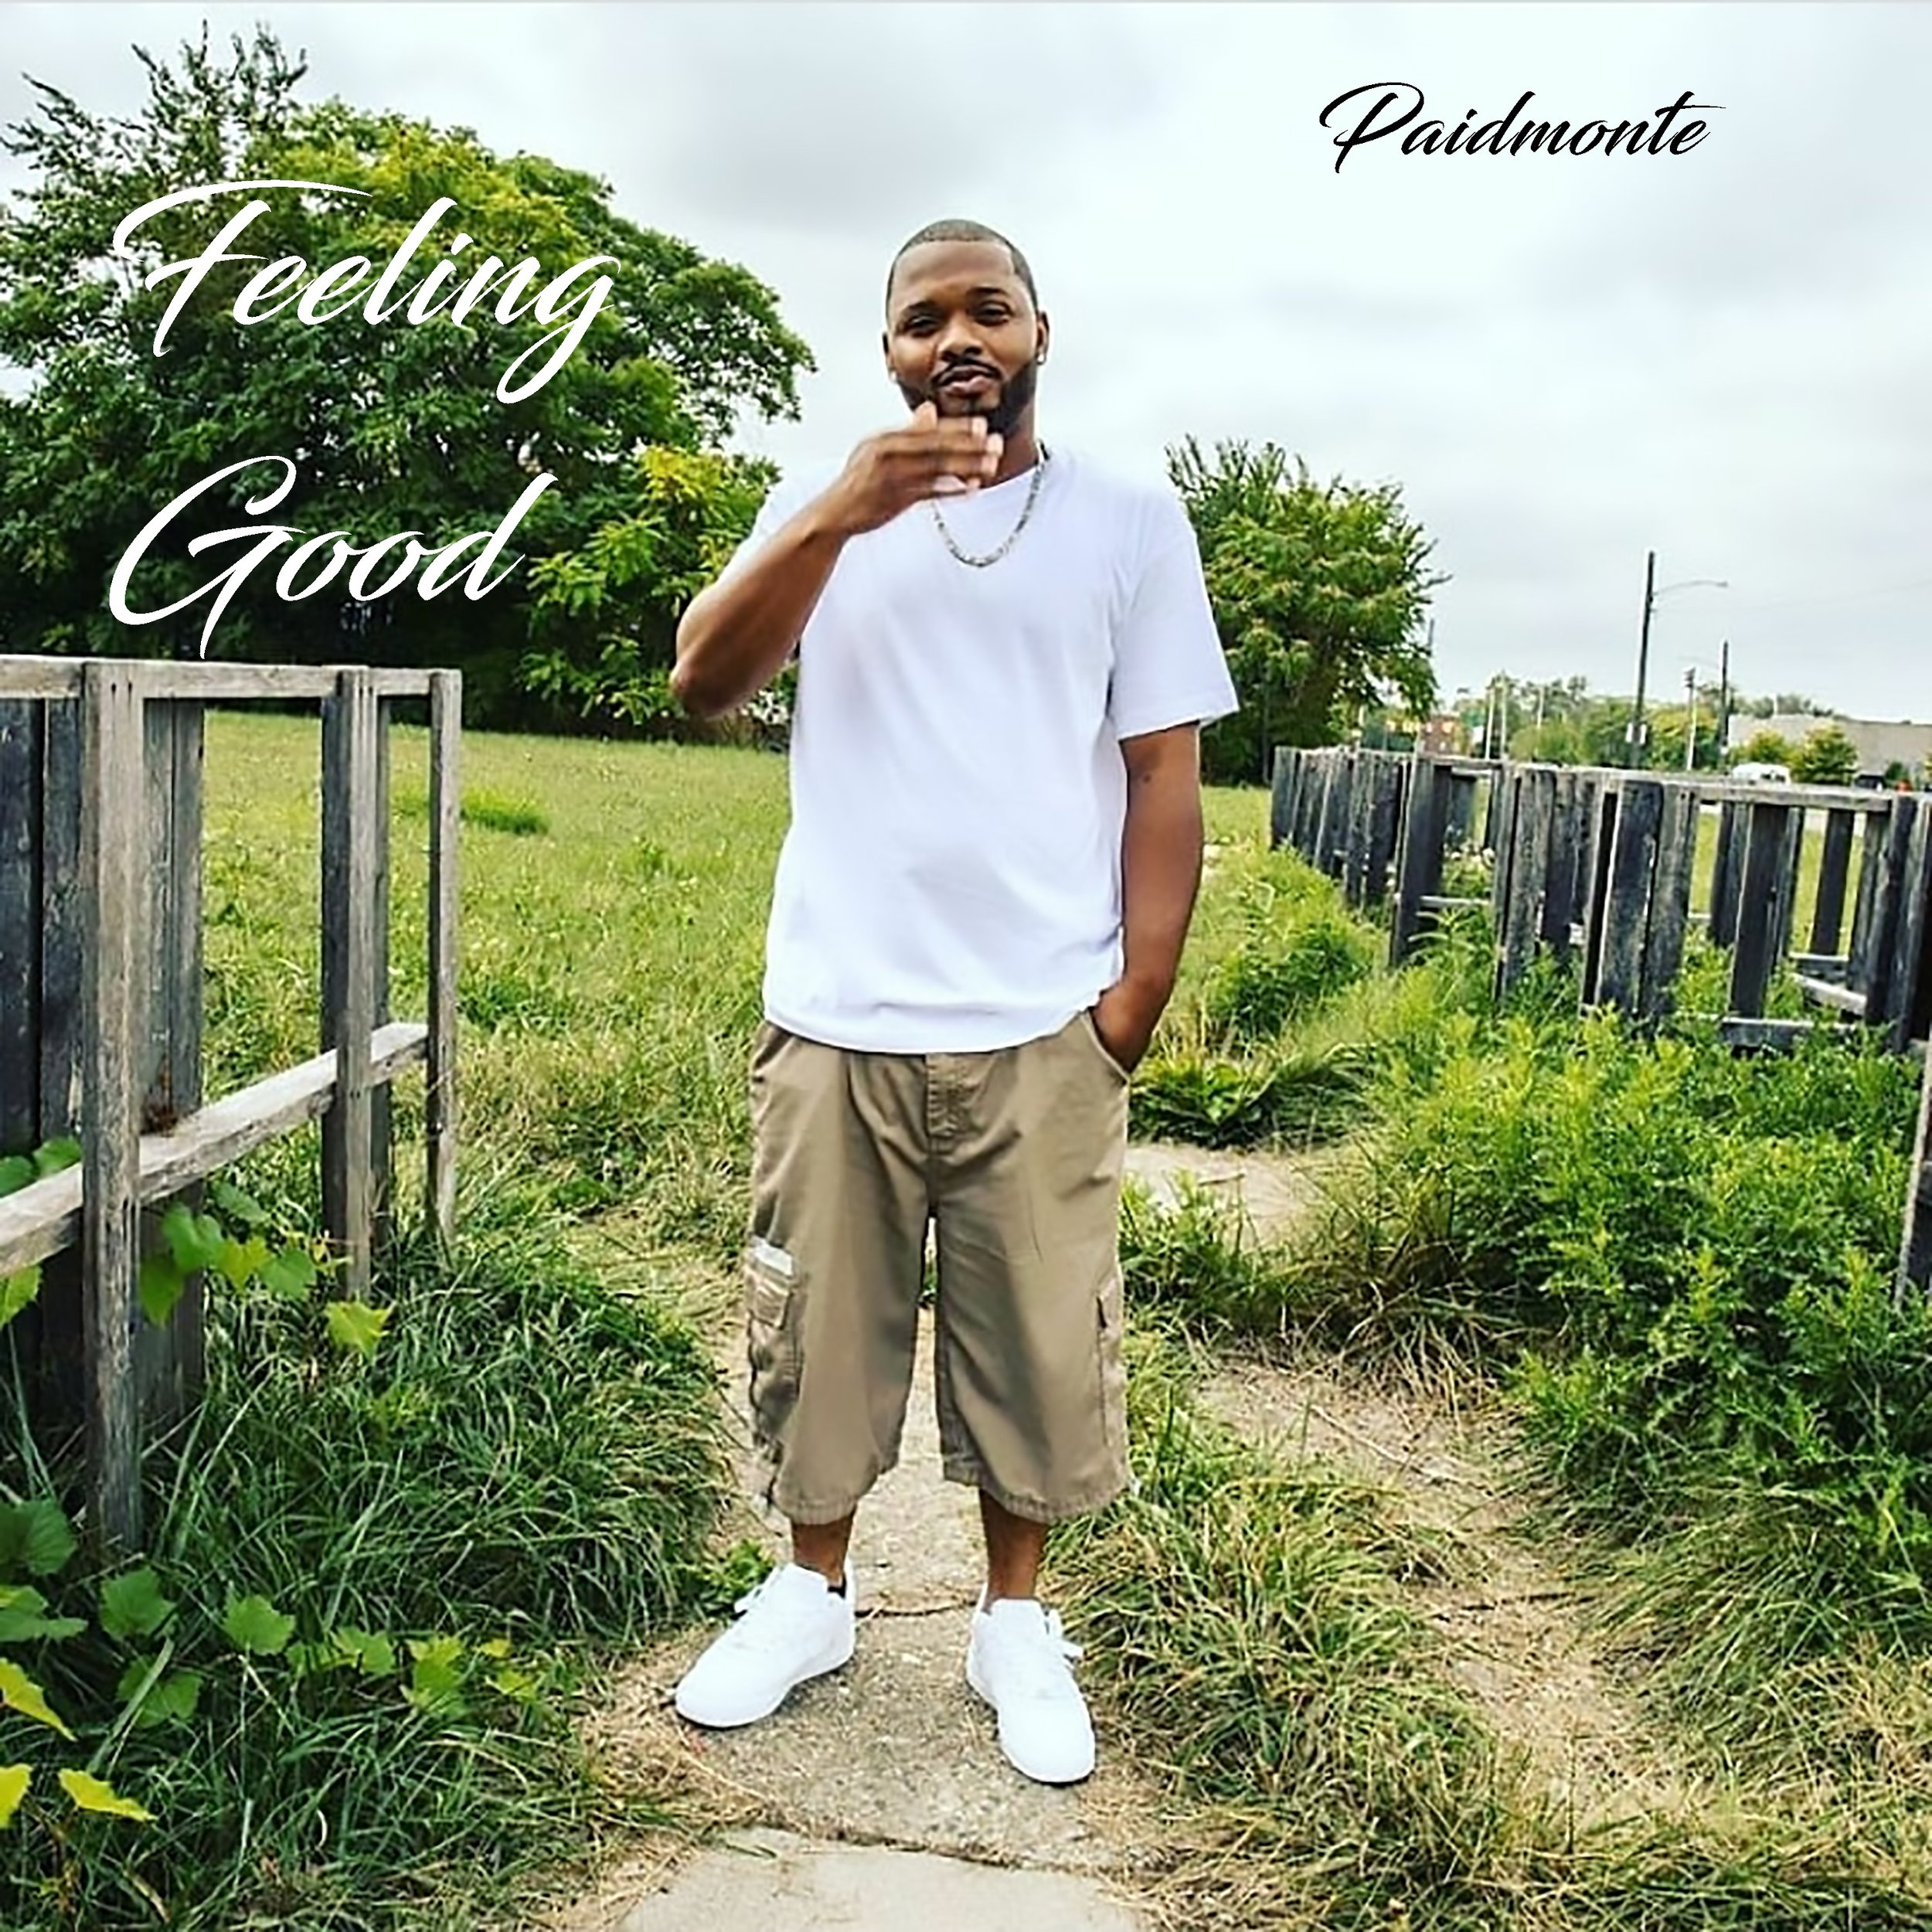 Paidmonte - Feeling Good - Single.jpg